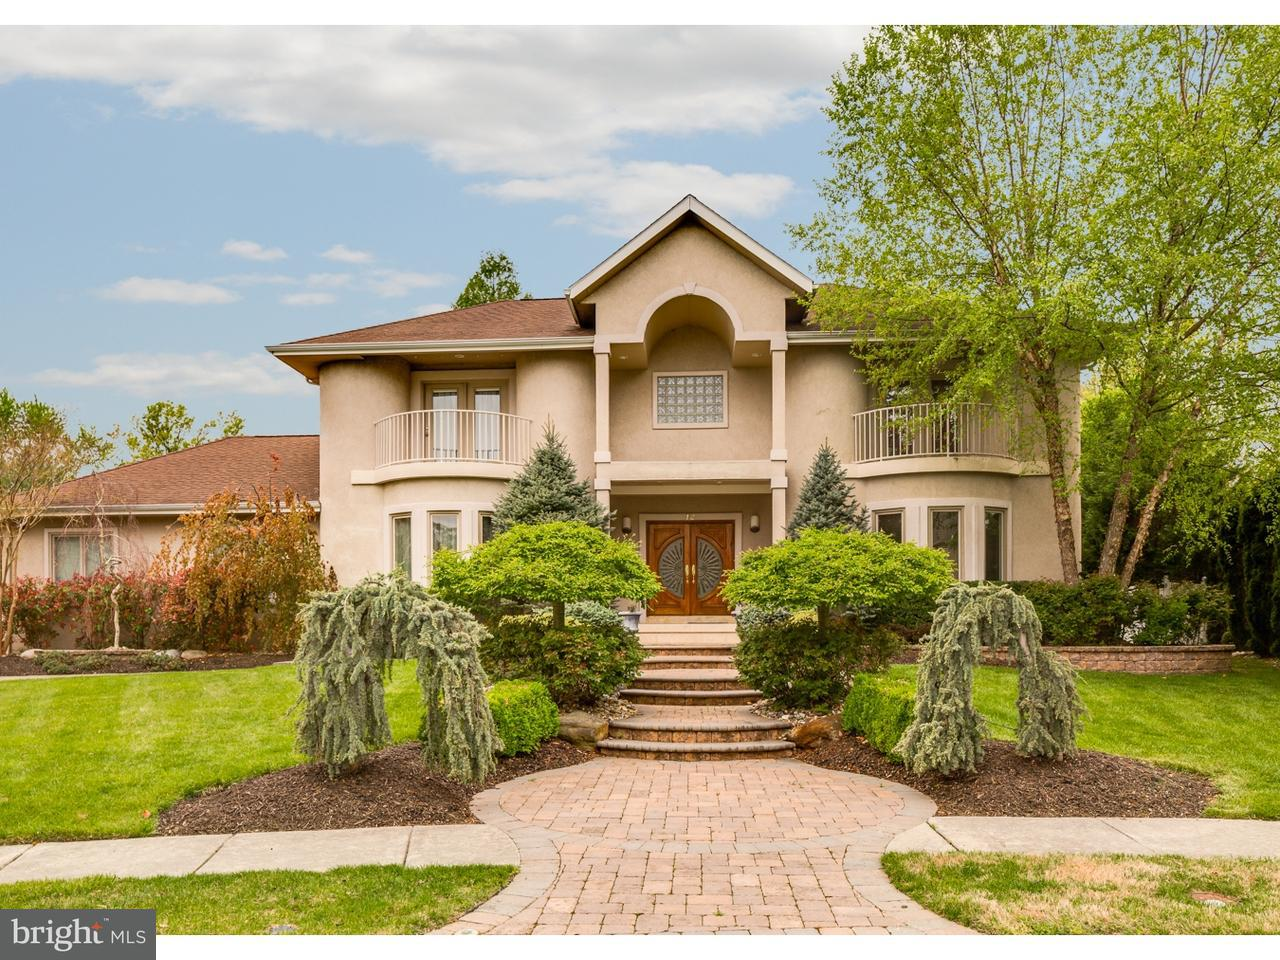 Single Family Home for Sale at 12 CARRIAGE HOUSE Court Cherry Hill, New Jersey 08003 United States